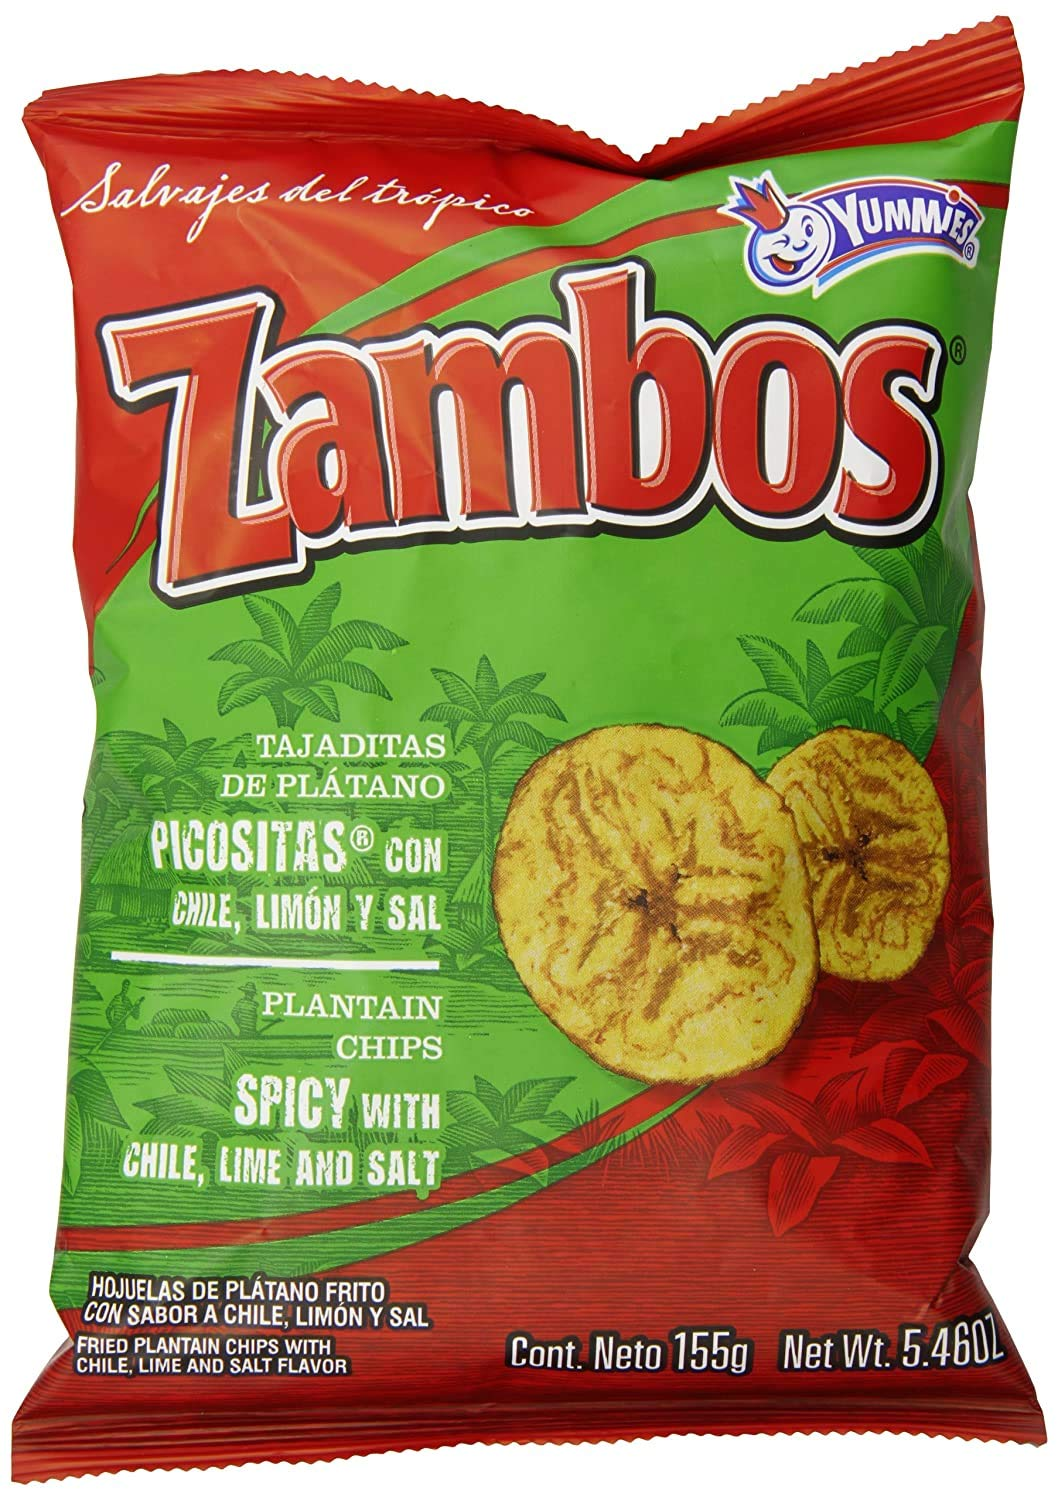 Zambos Plantain Chips: Spicy with Chili,Lime and Salt (Tajaditas de Plátano con Chile + Limón y Sal) Crunchy with spicy taste that many like | Salvajes del Trópico | 5.46 ounces (155grams) 3 pack